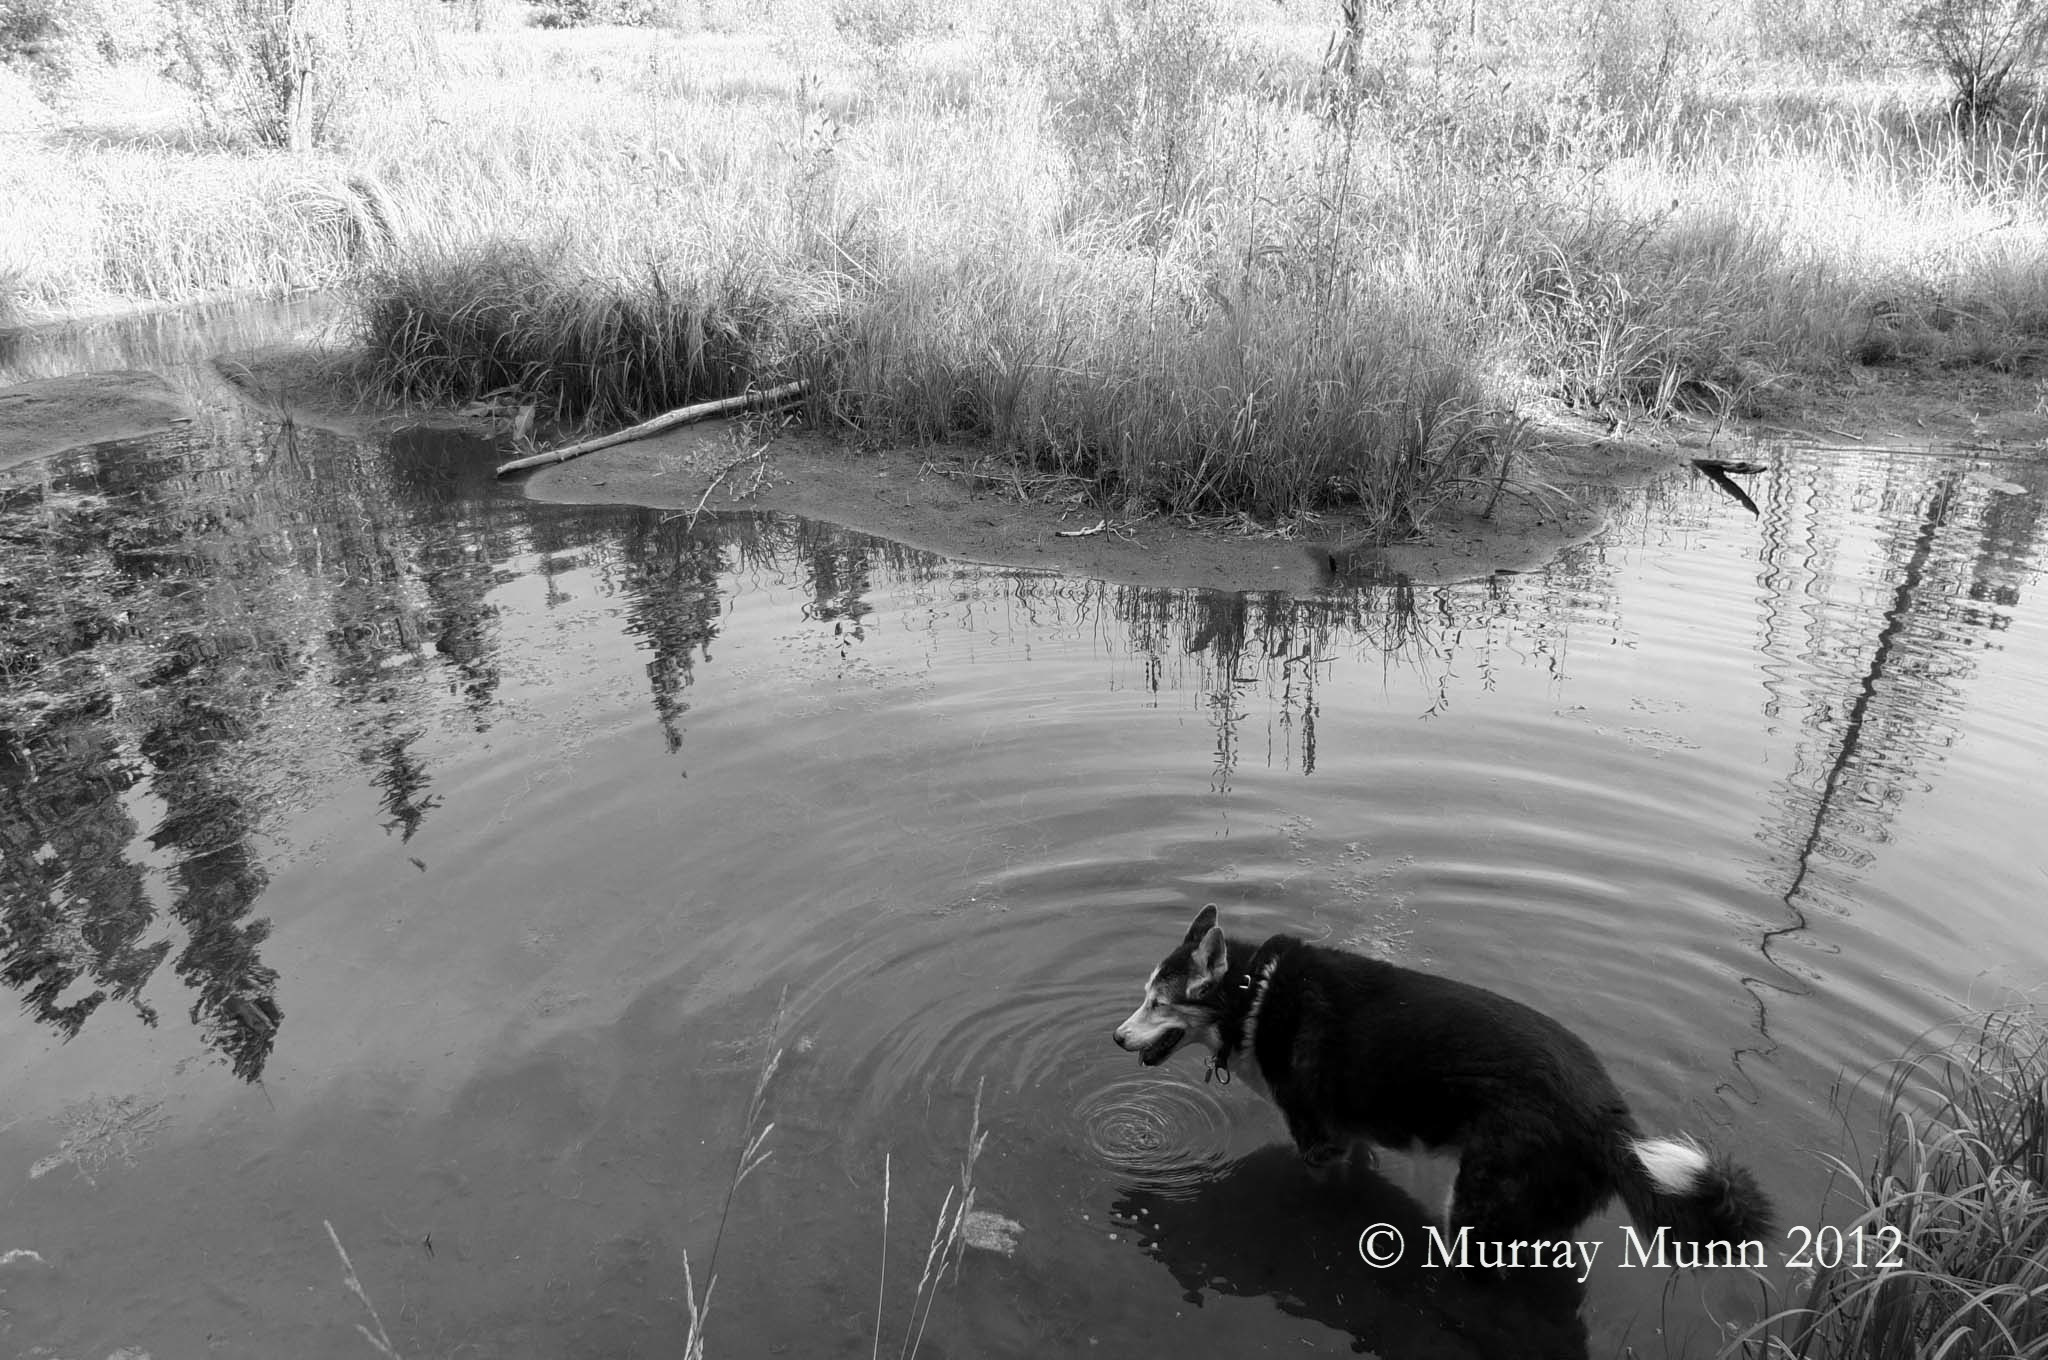 Shelby pausing in water, Lost Pond | Photo by: Murray Munn